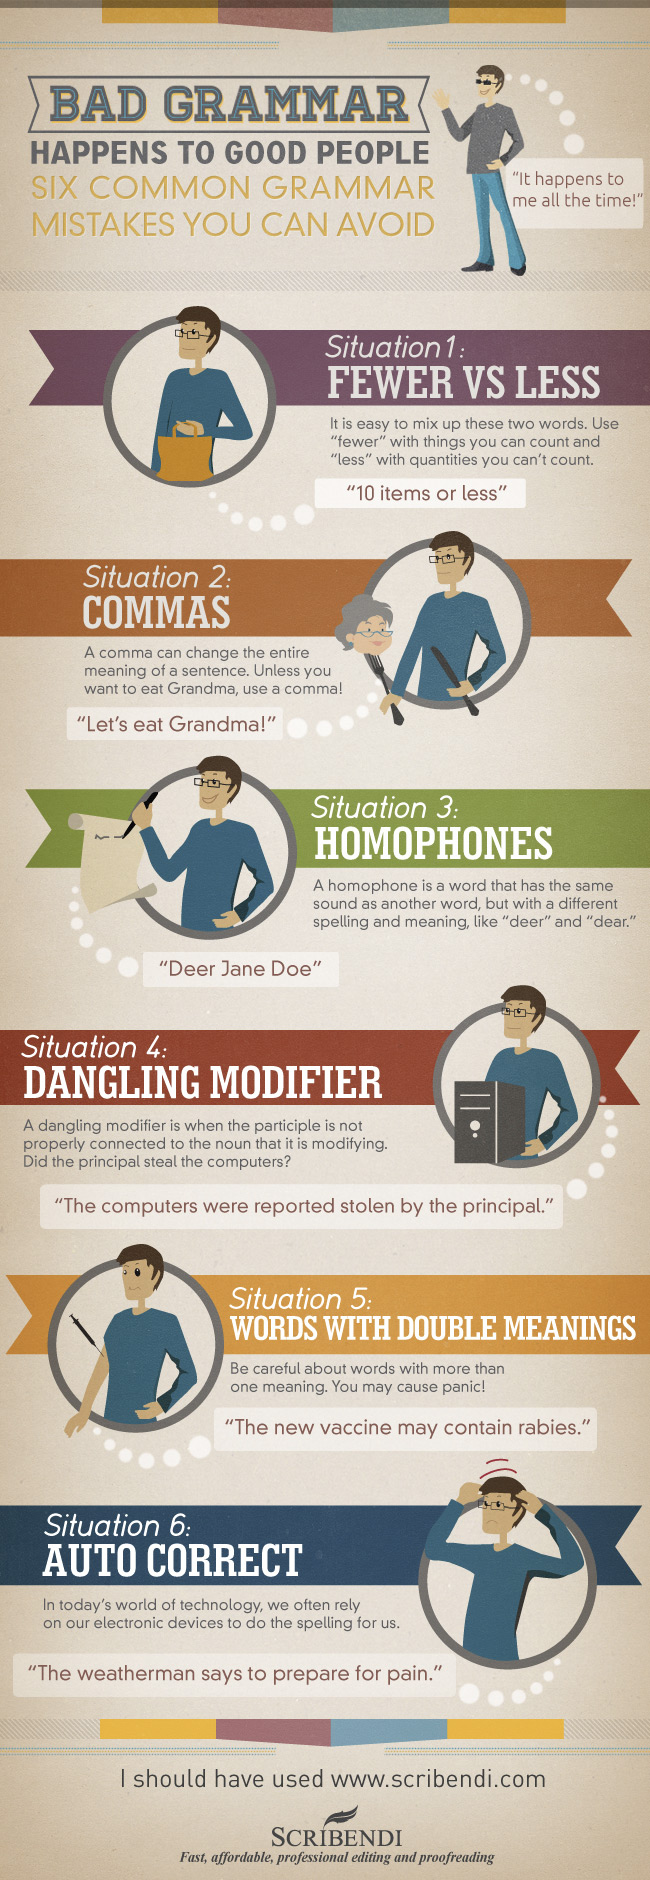 Scribendi.com's infographic highlighting common grammar mistakes.